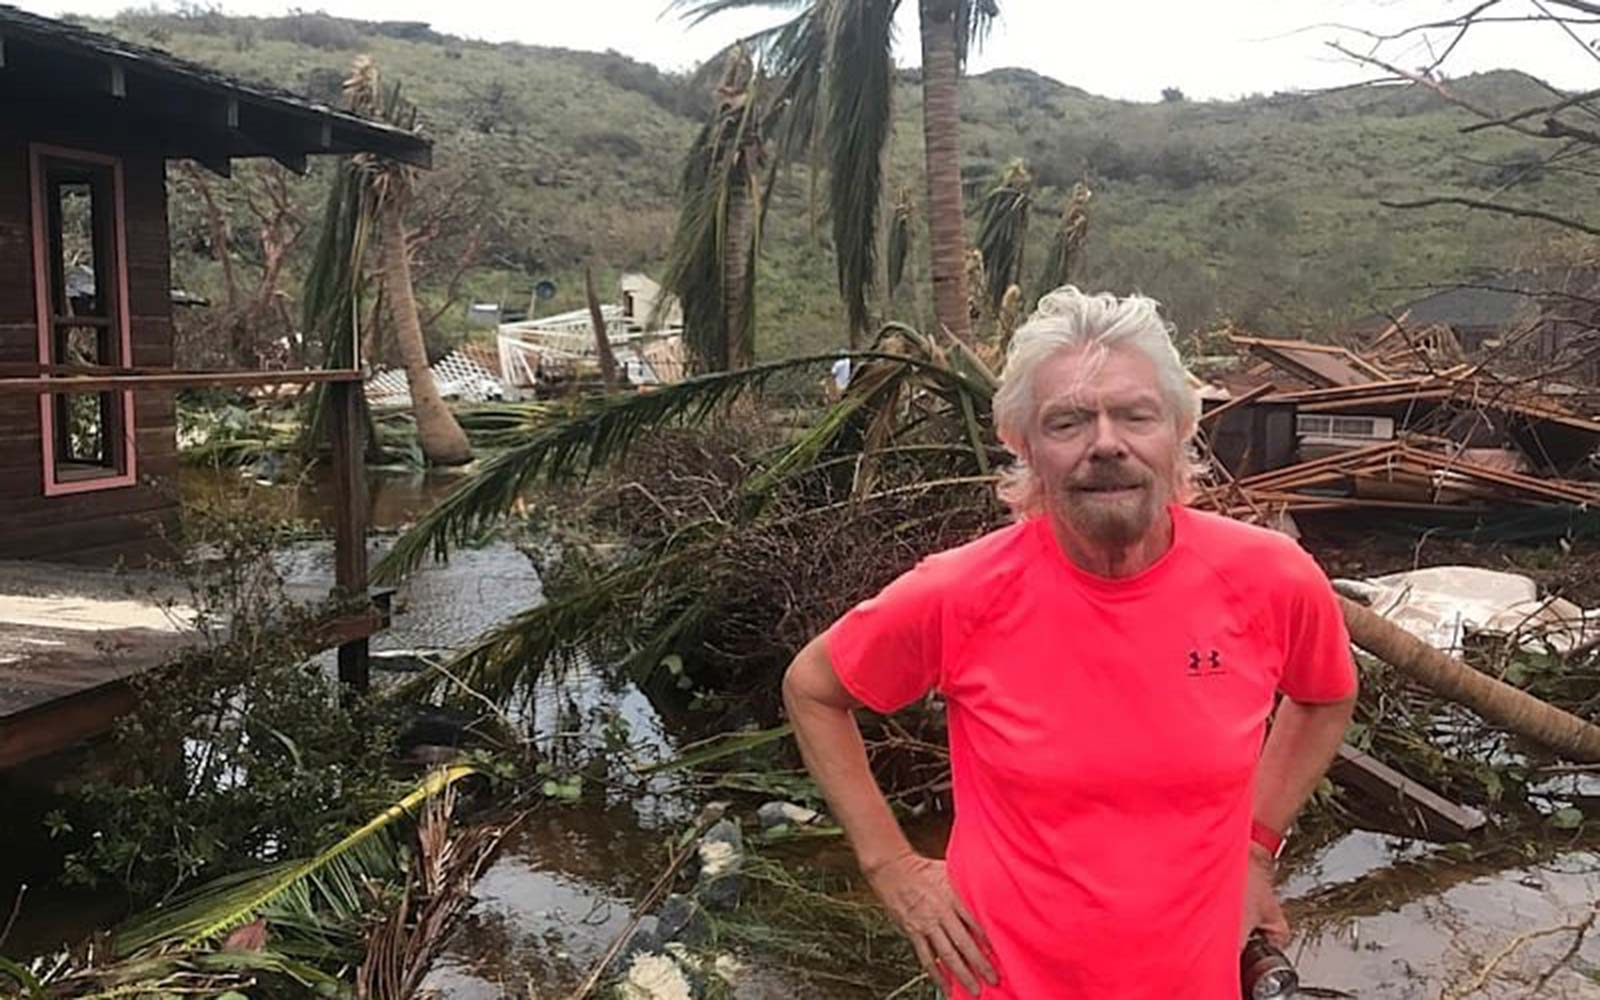 After Hurricane Irma, Richard Branson's Private Island Resort Will Open in October 2018